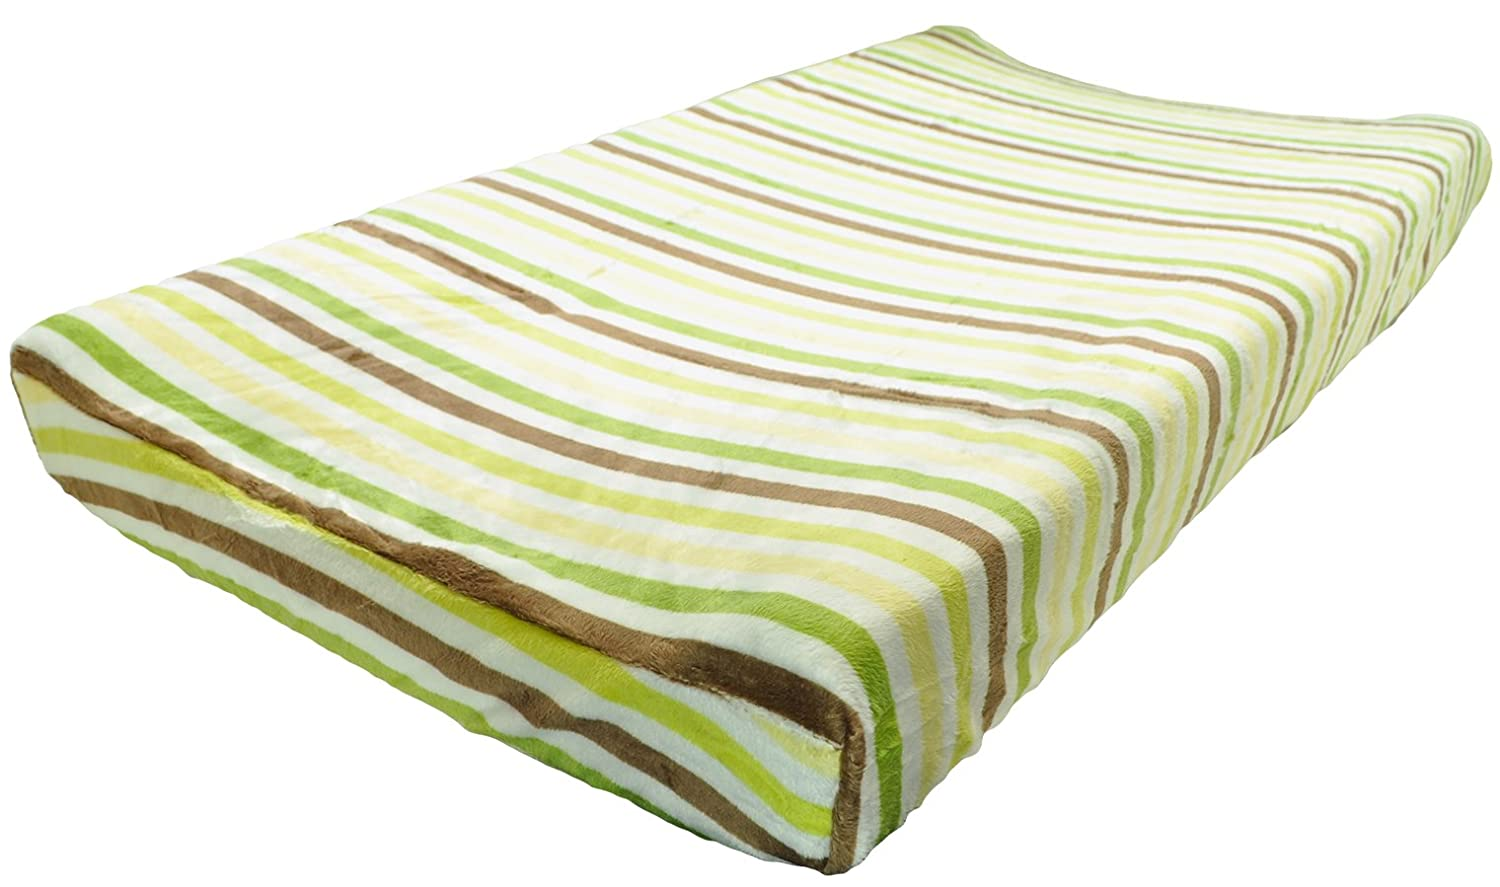 KidsLine Unisex Plush Baby Boy Changing Pad Cover Green Kids Line